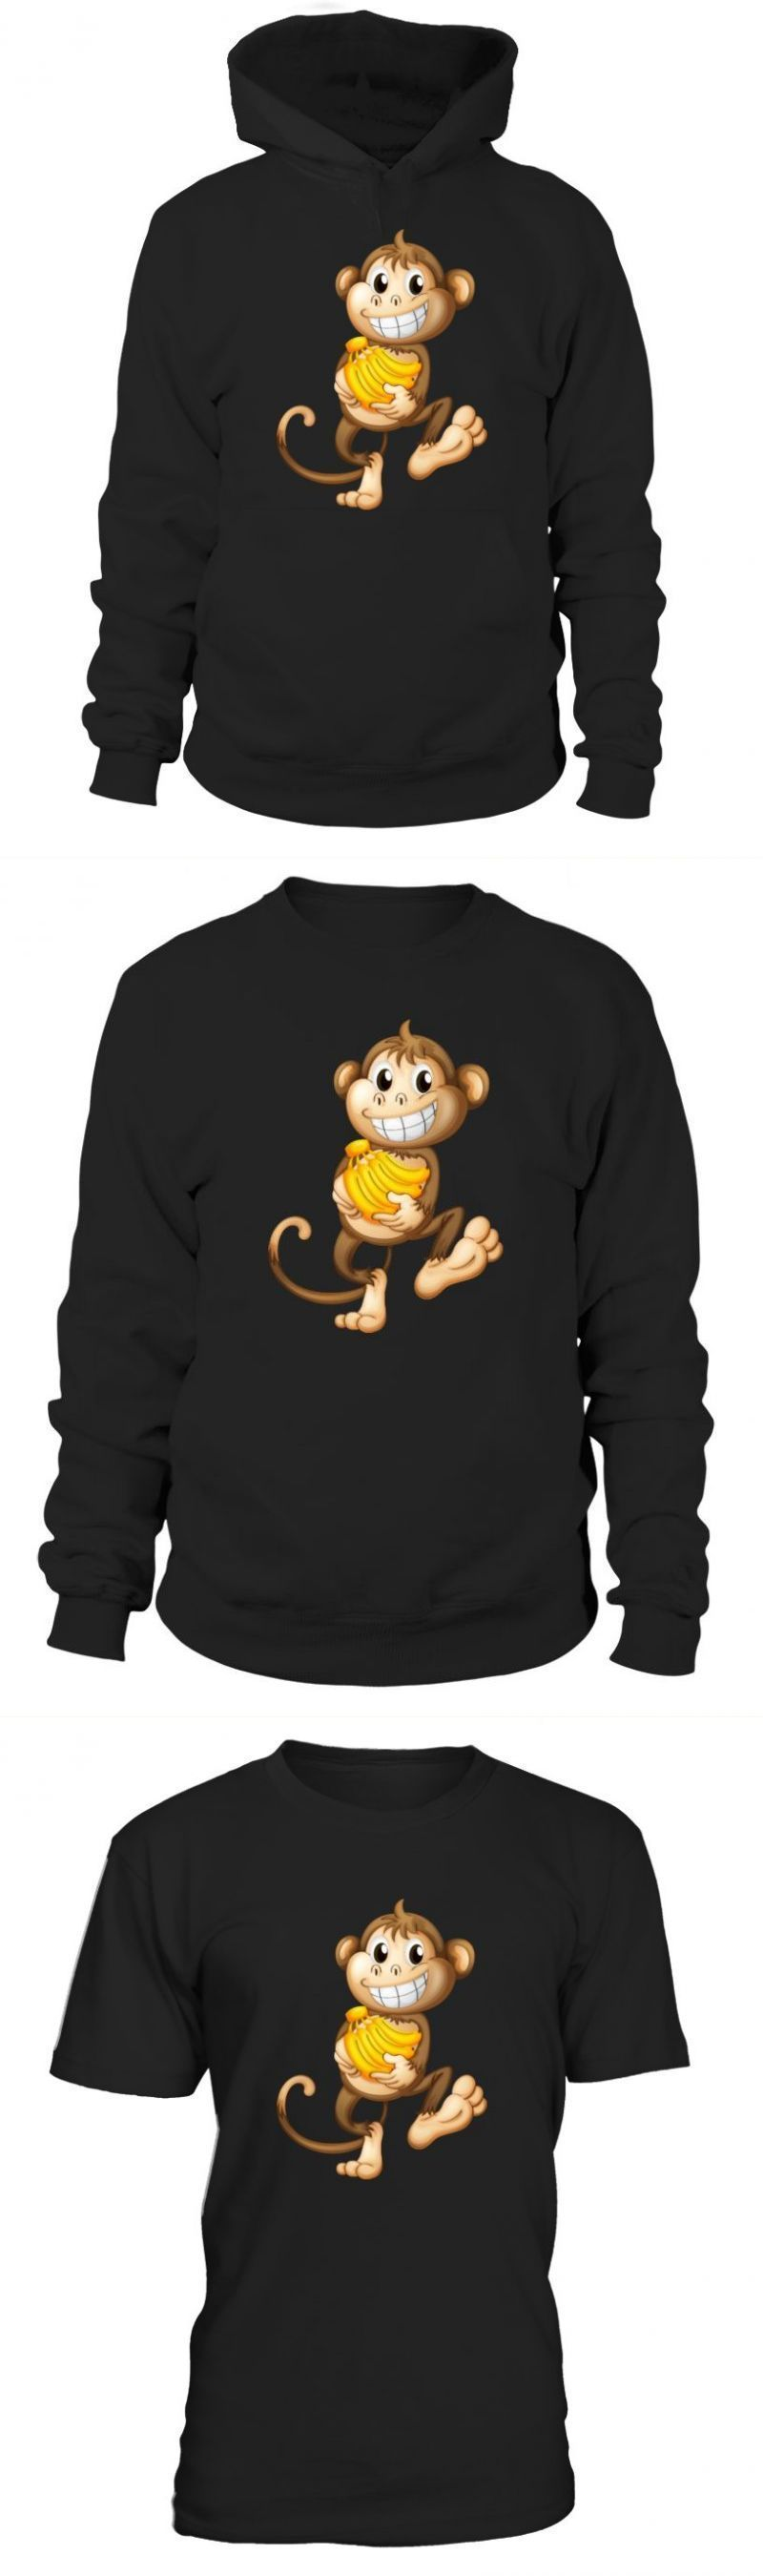 Gas monkey garage t shirt monkey monkey t shirt costume #gasmonkeygarage Gas monkey garage t shirt monkey monkey t shirt costume #gas #monkey #garage #shirt #costume #t-shirt #for #kids #hoodie #unisex #sweatshirt #round #neck #gasmonkeygarage